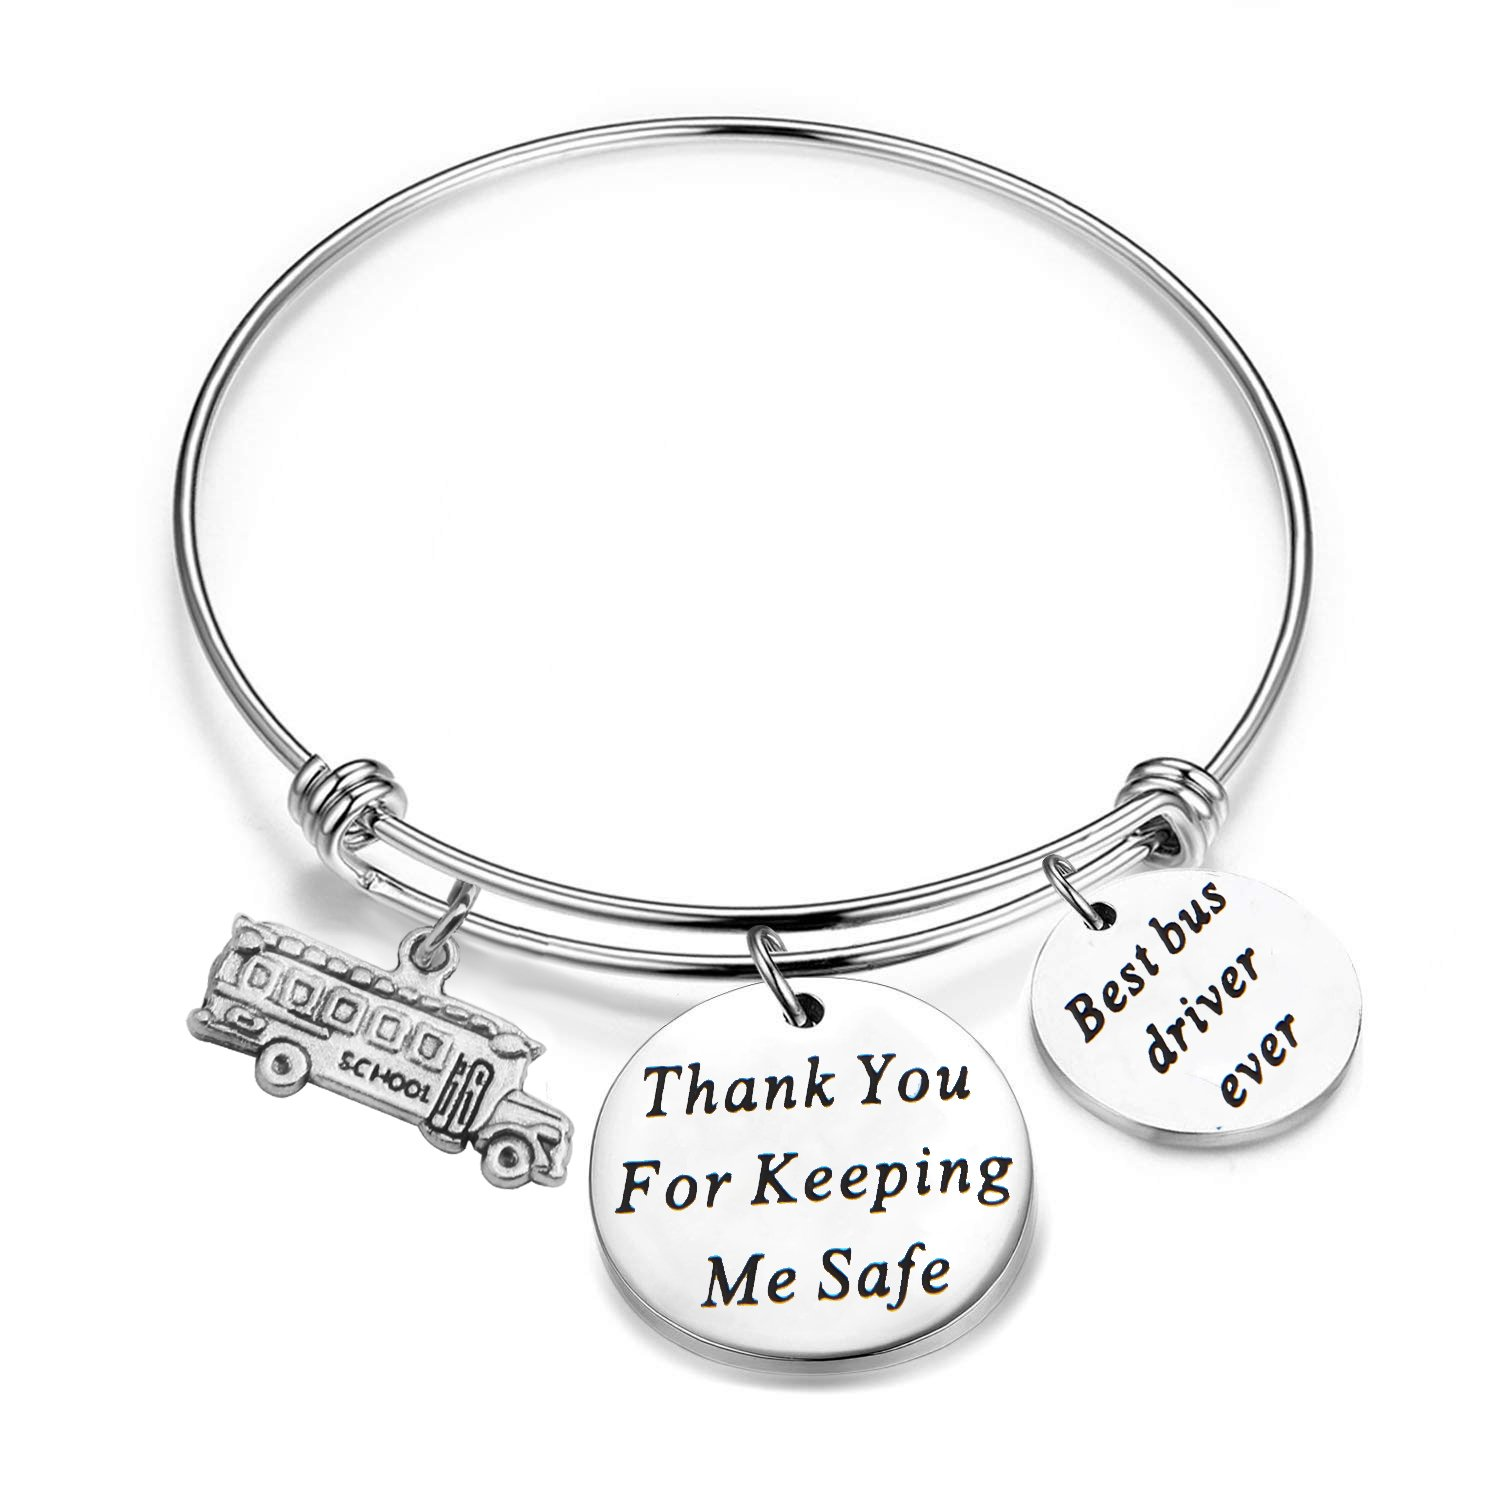 SEIRAA Drive Safe KeyChain Bus Driver Keychain Thank You For Keeping Me Safe Bus Driver Appreciation Gift For Driver (Bus Driver Bracelet)